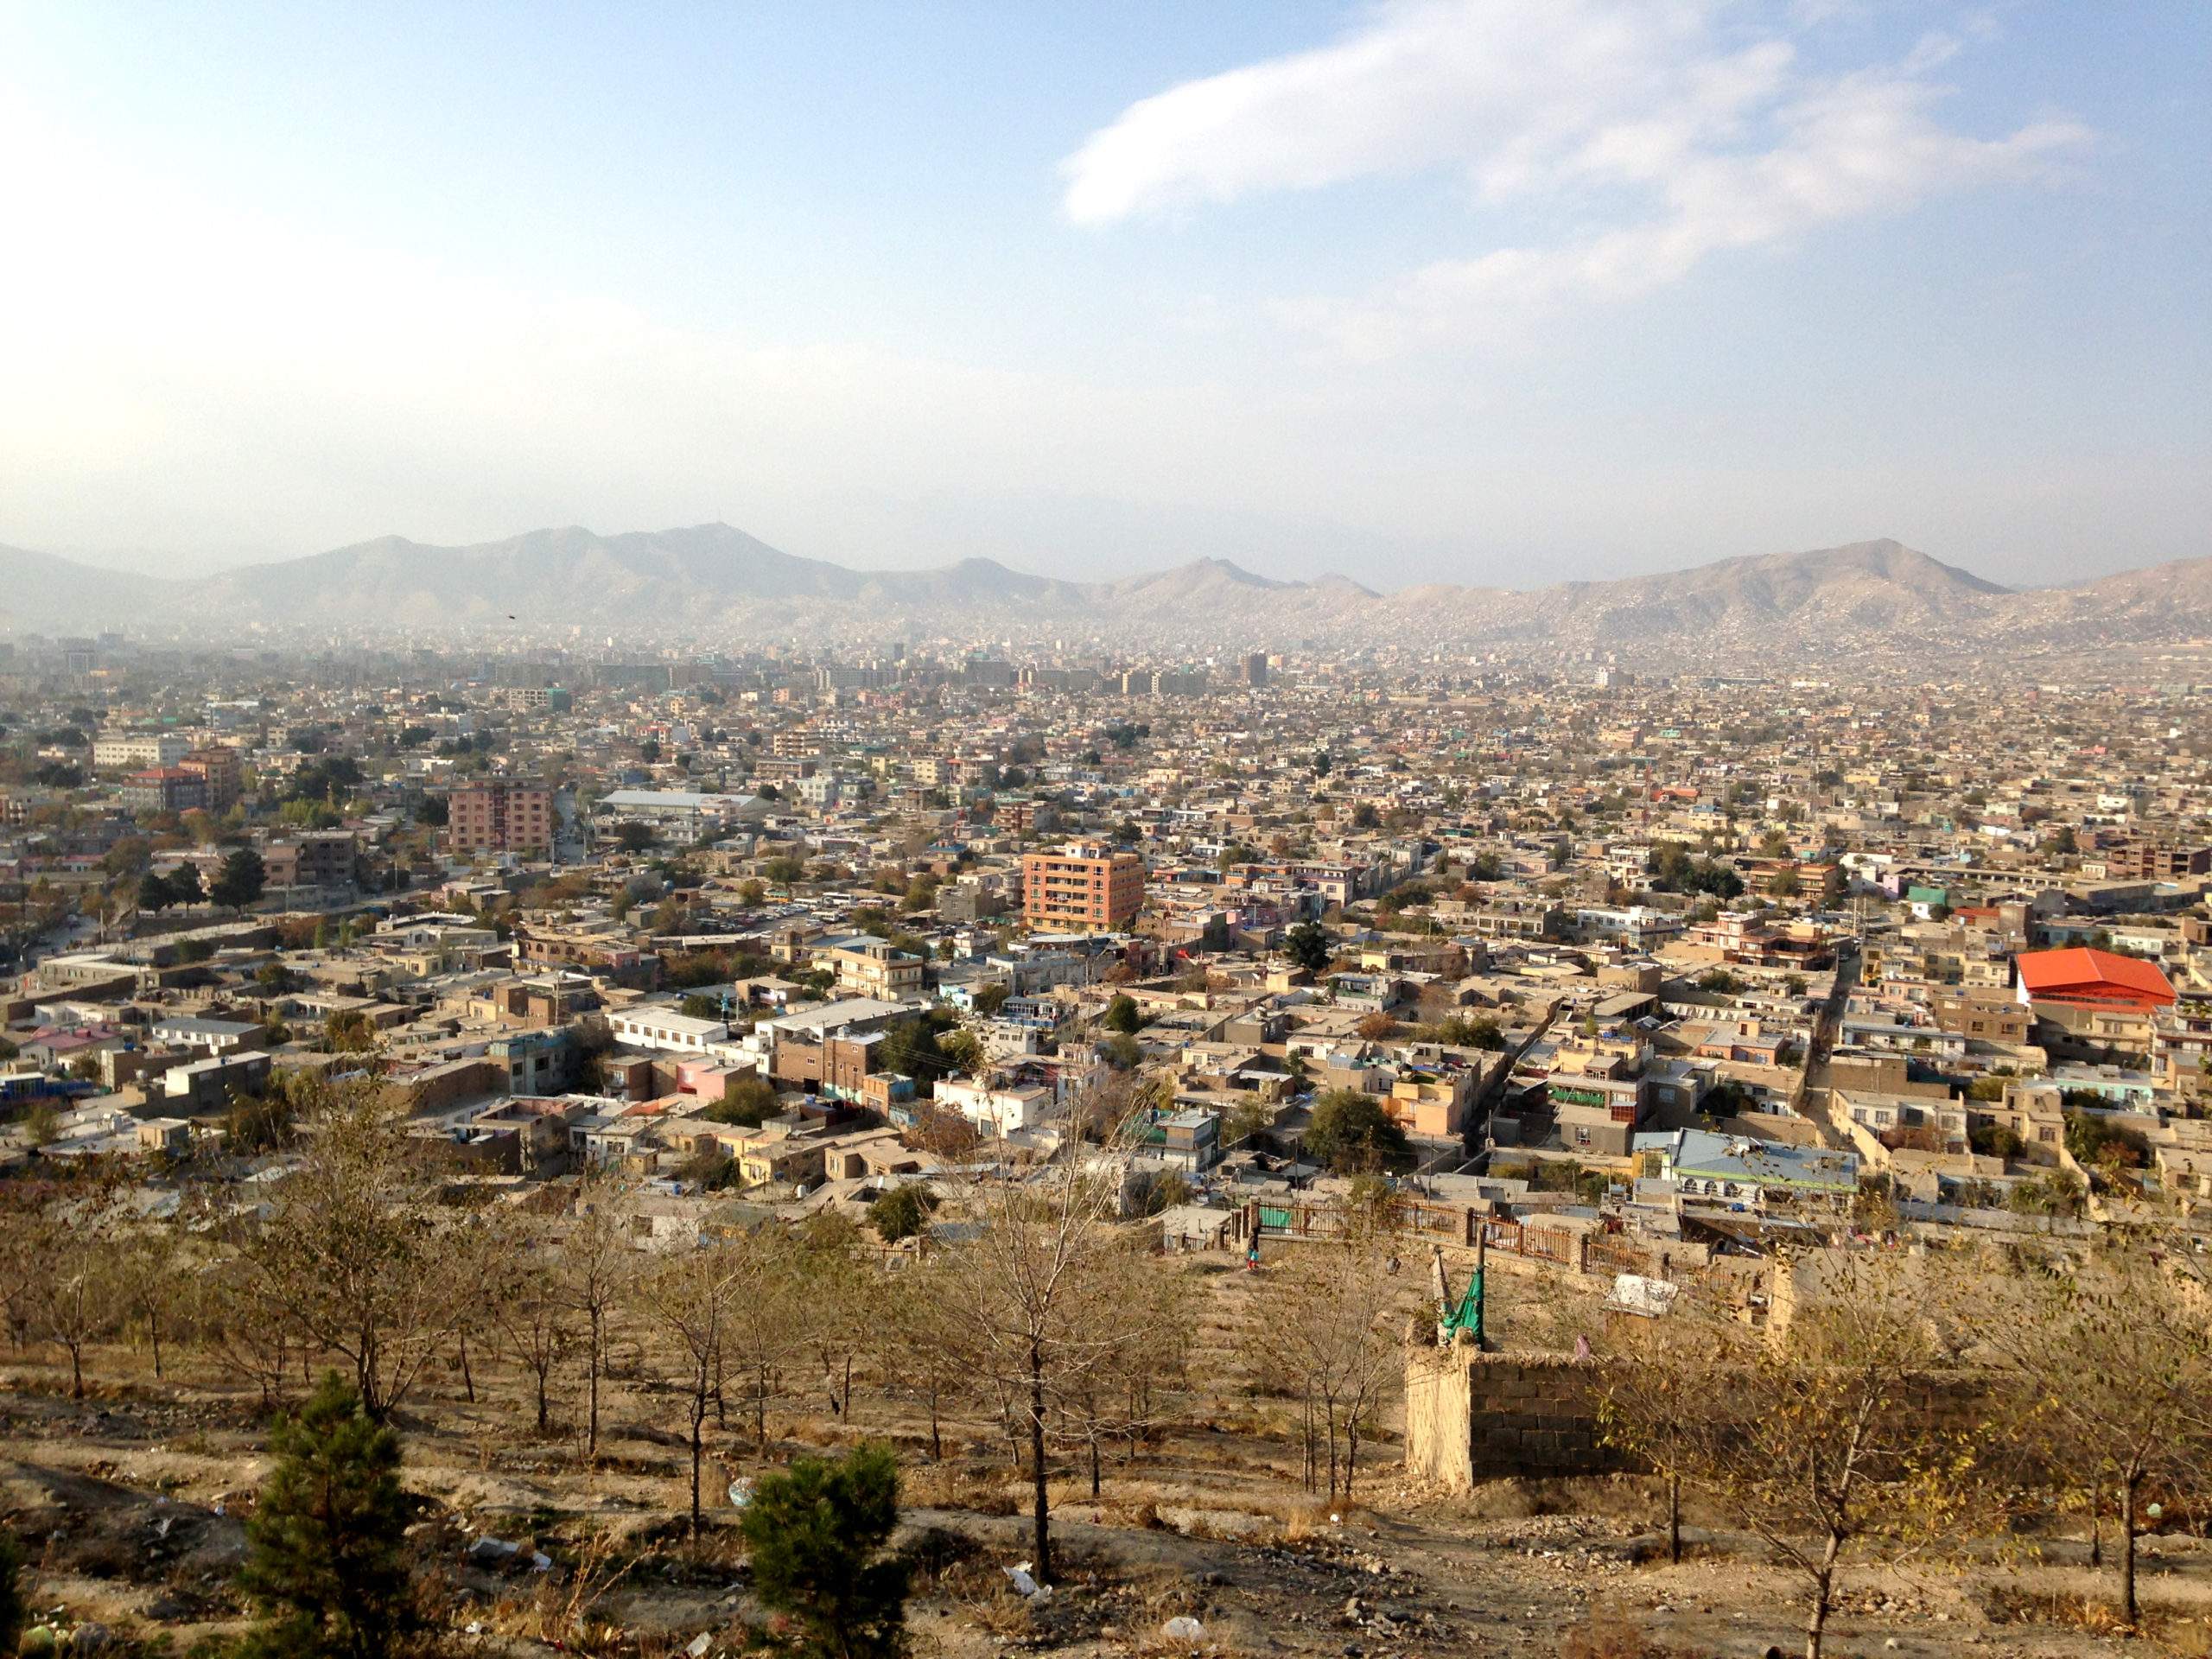 Despite the pandemic, Geres remains concerned and mobilised by the unique socio-economic crisis in Afghanistan